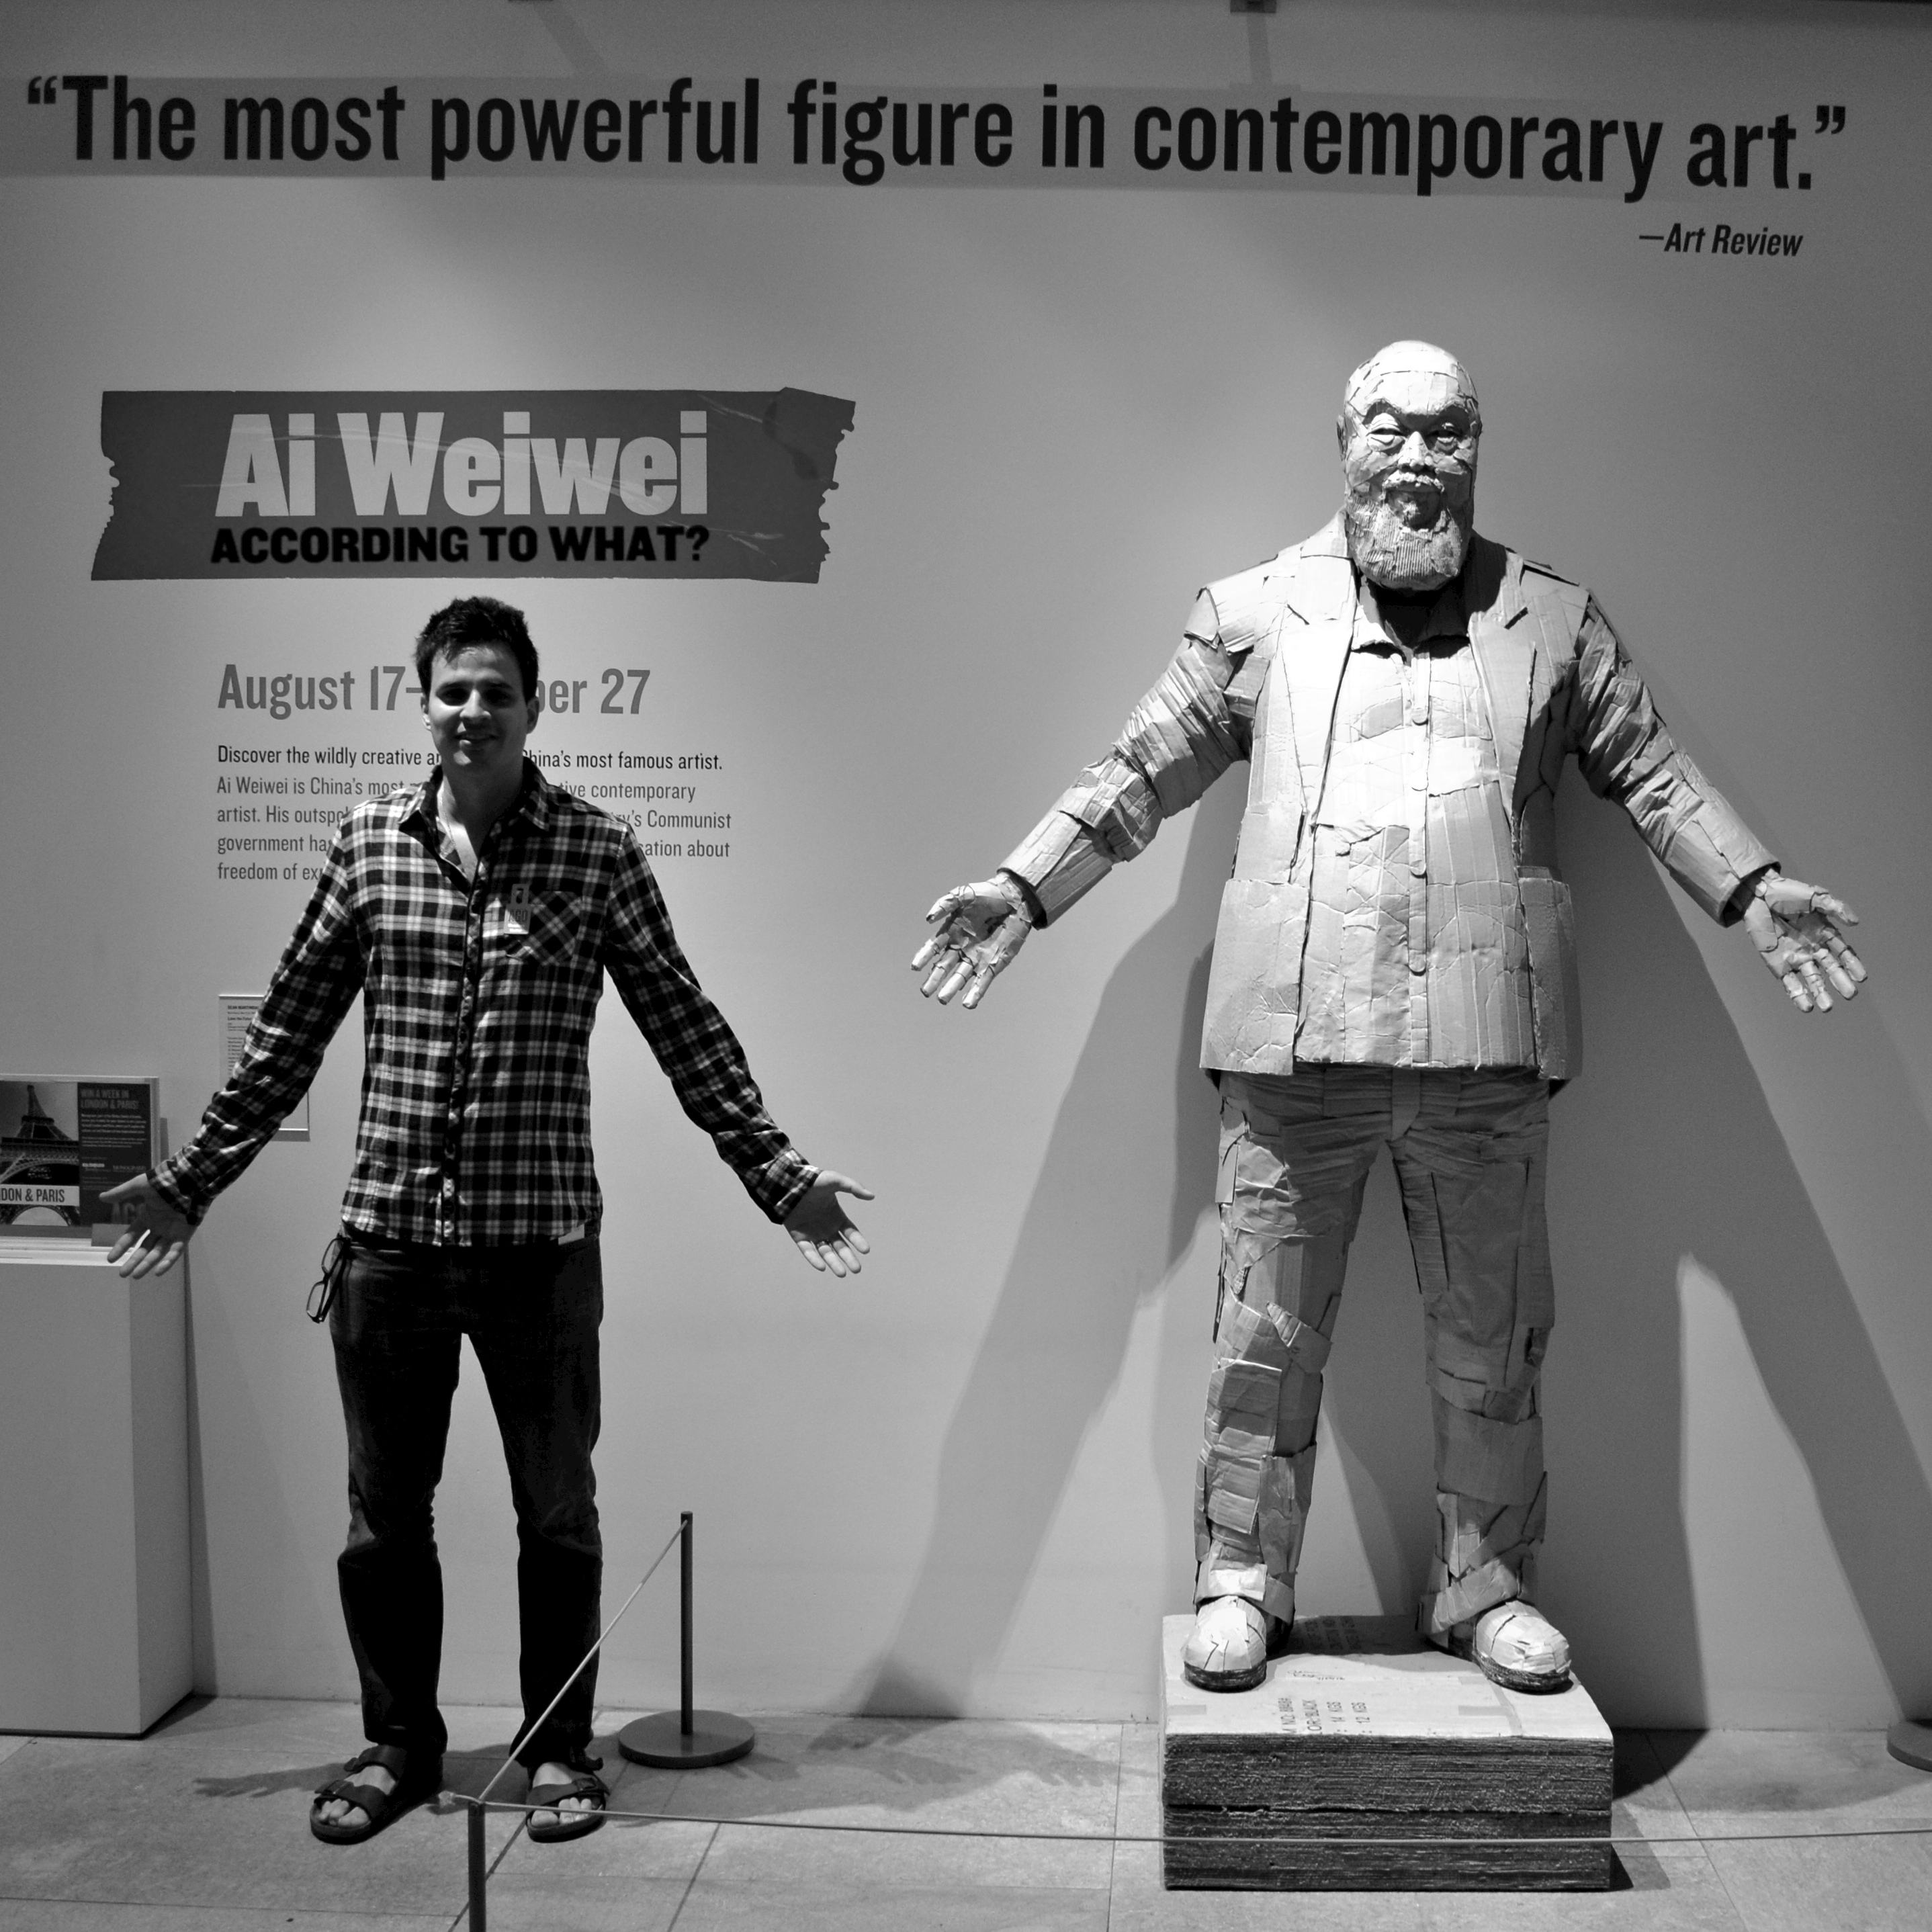 Ai weiwei paul db watkins ai weiwei and me floridaeventfo Image collections